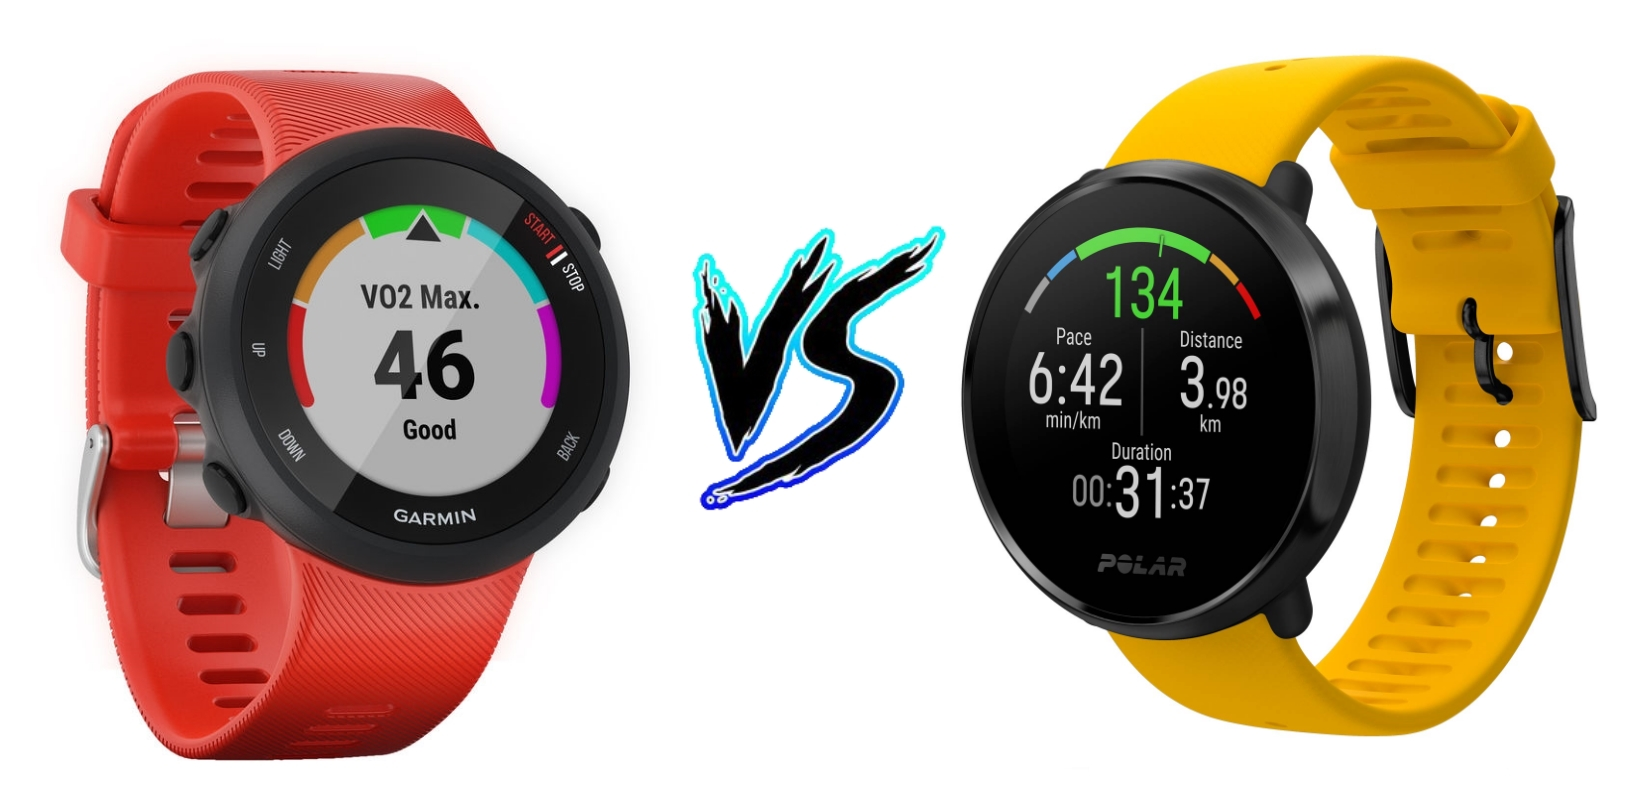 Garmin Forerunner 45 vs Polar Ignite